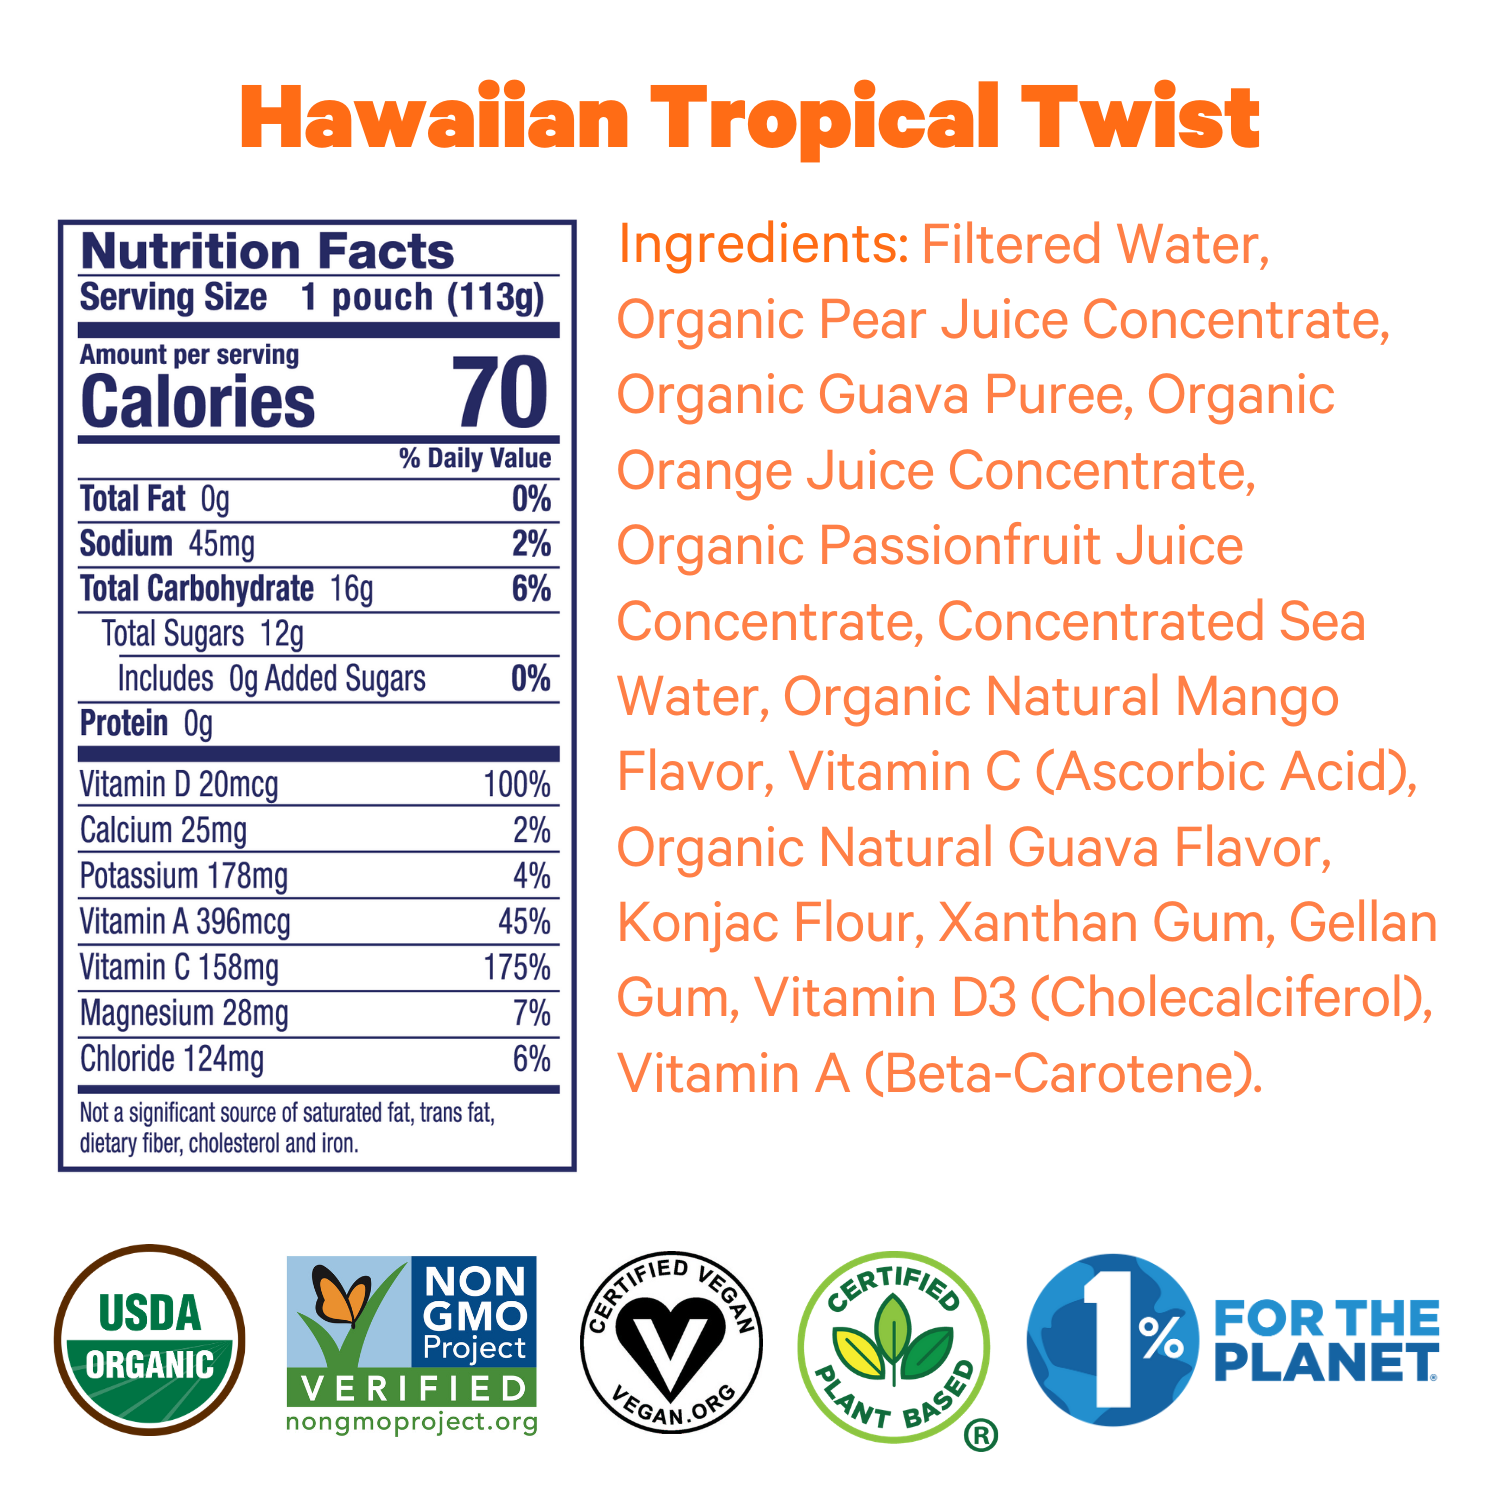 Zellee Organic Sports Jels ingredients and certifications for Hawaiian Tropical Twist